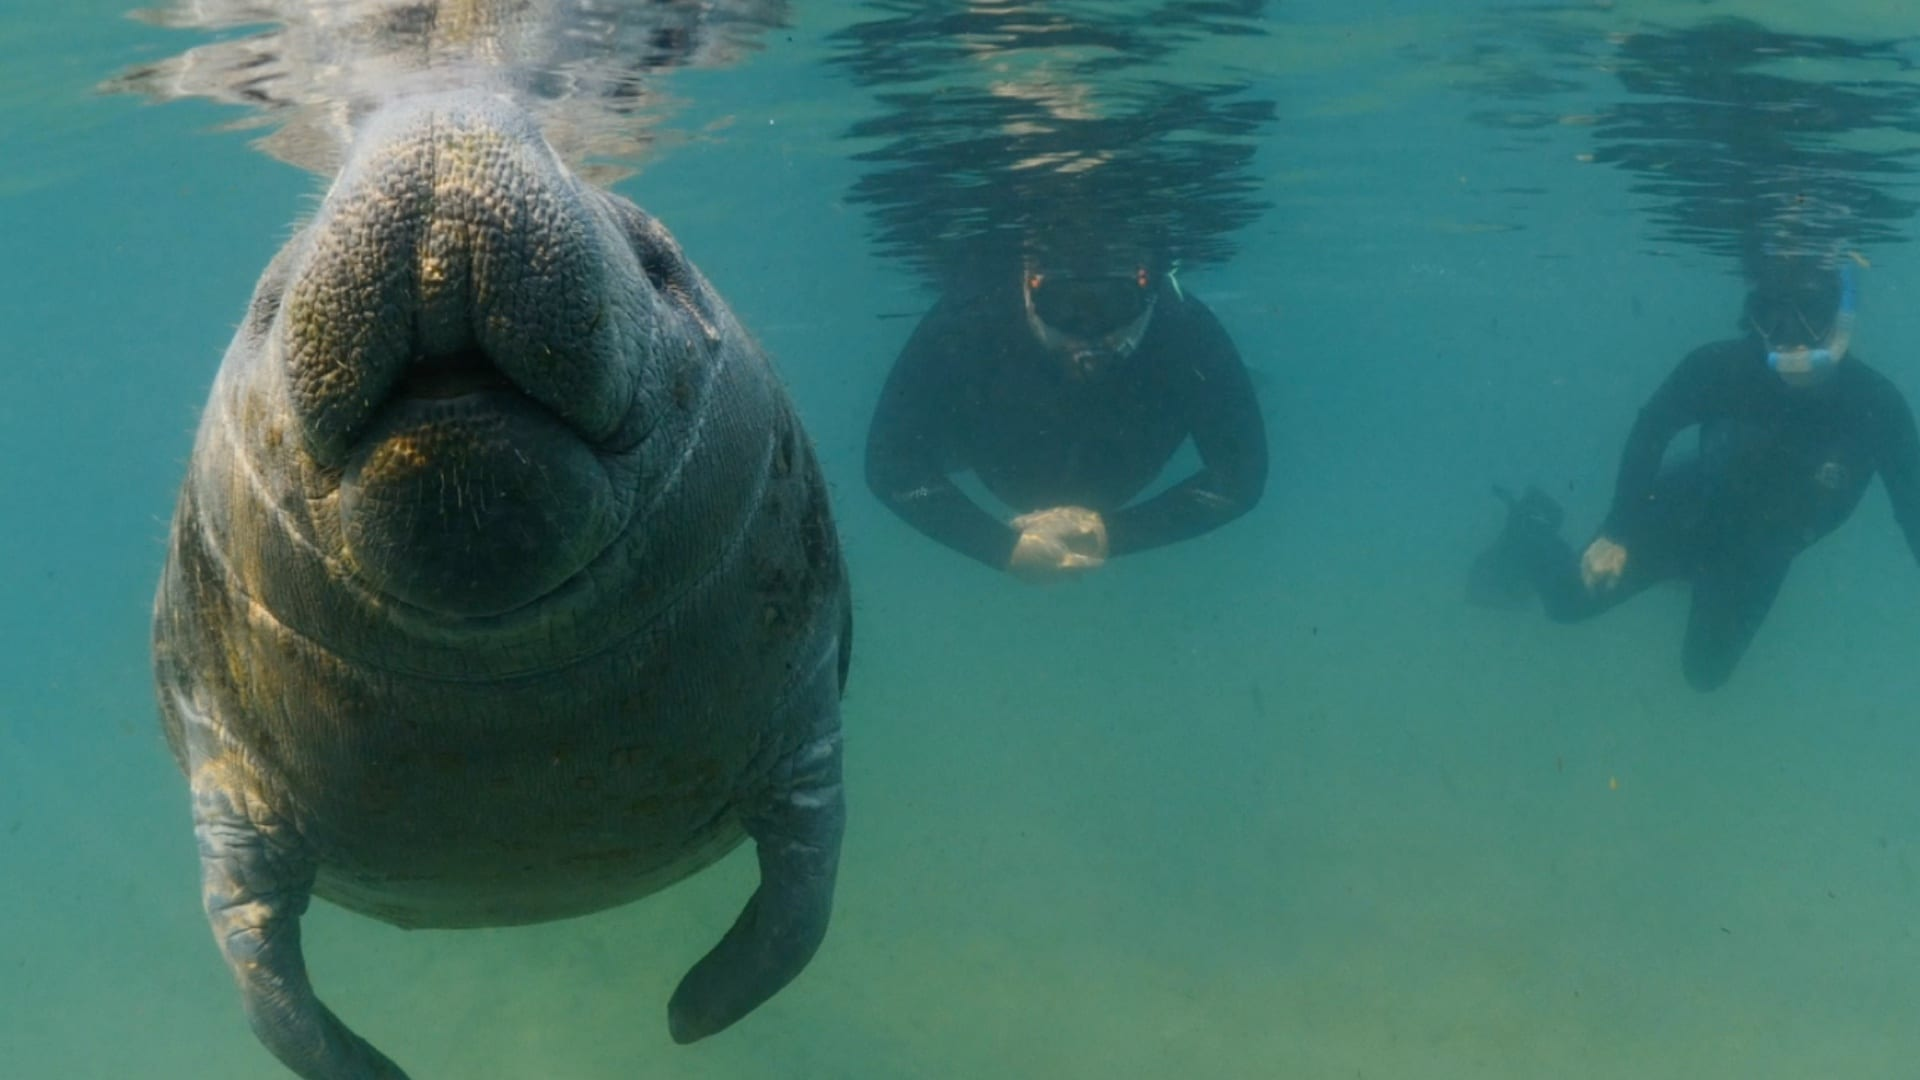 Swimming with Manatees Bird's Underwater